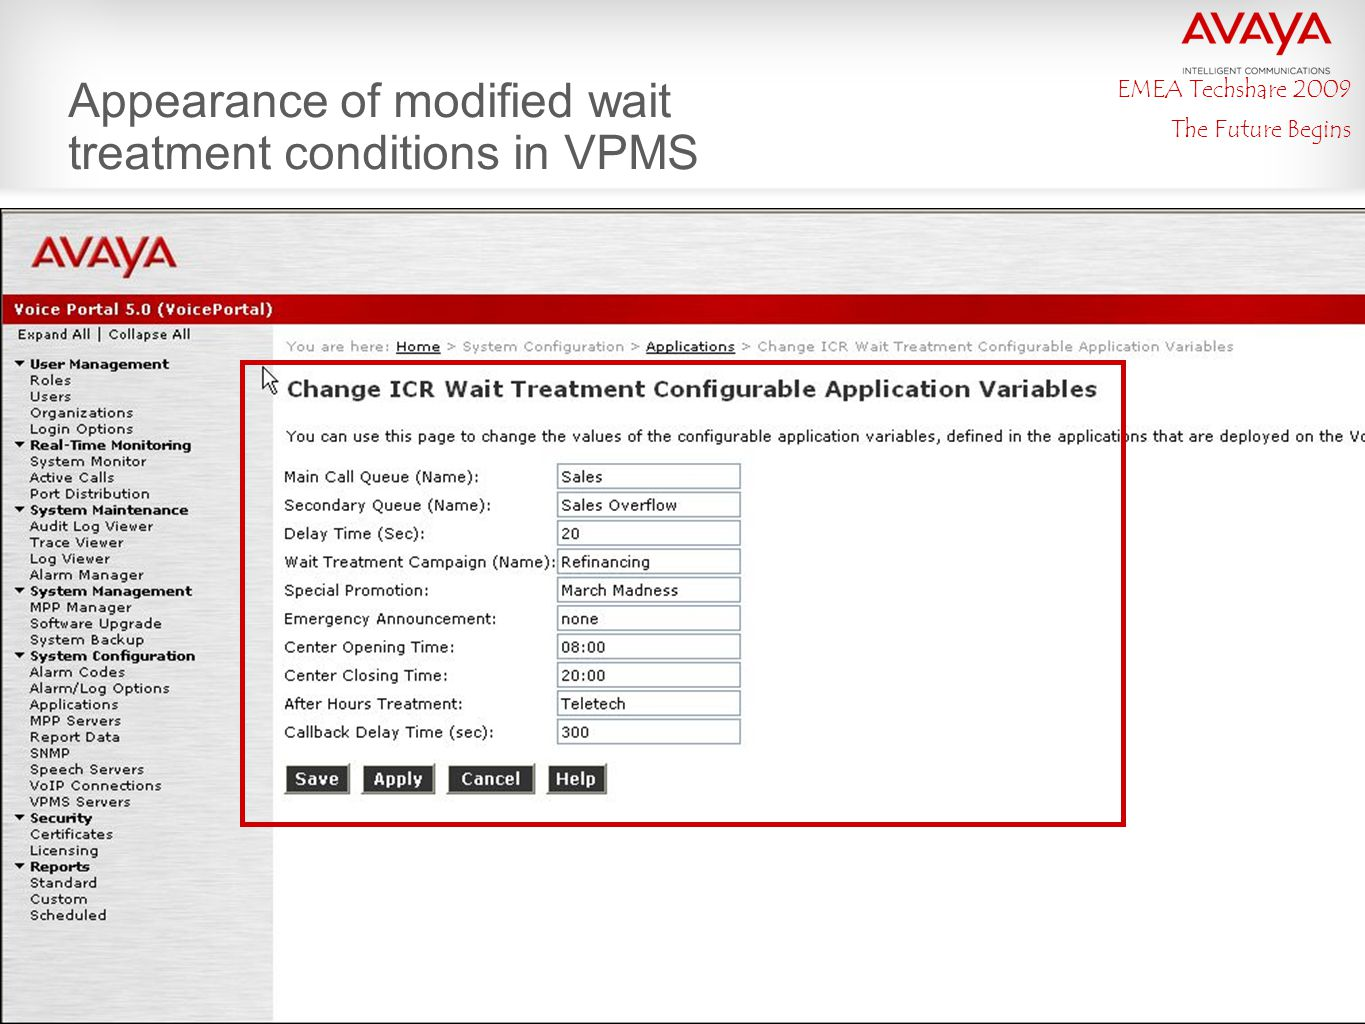 EMEA Techshare 2009 The Future Begins Appearance of modified wait treatment conditions in VPMS